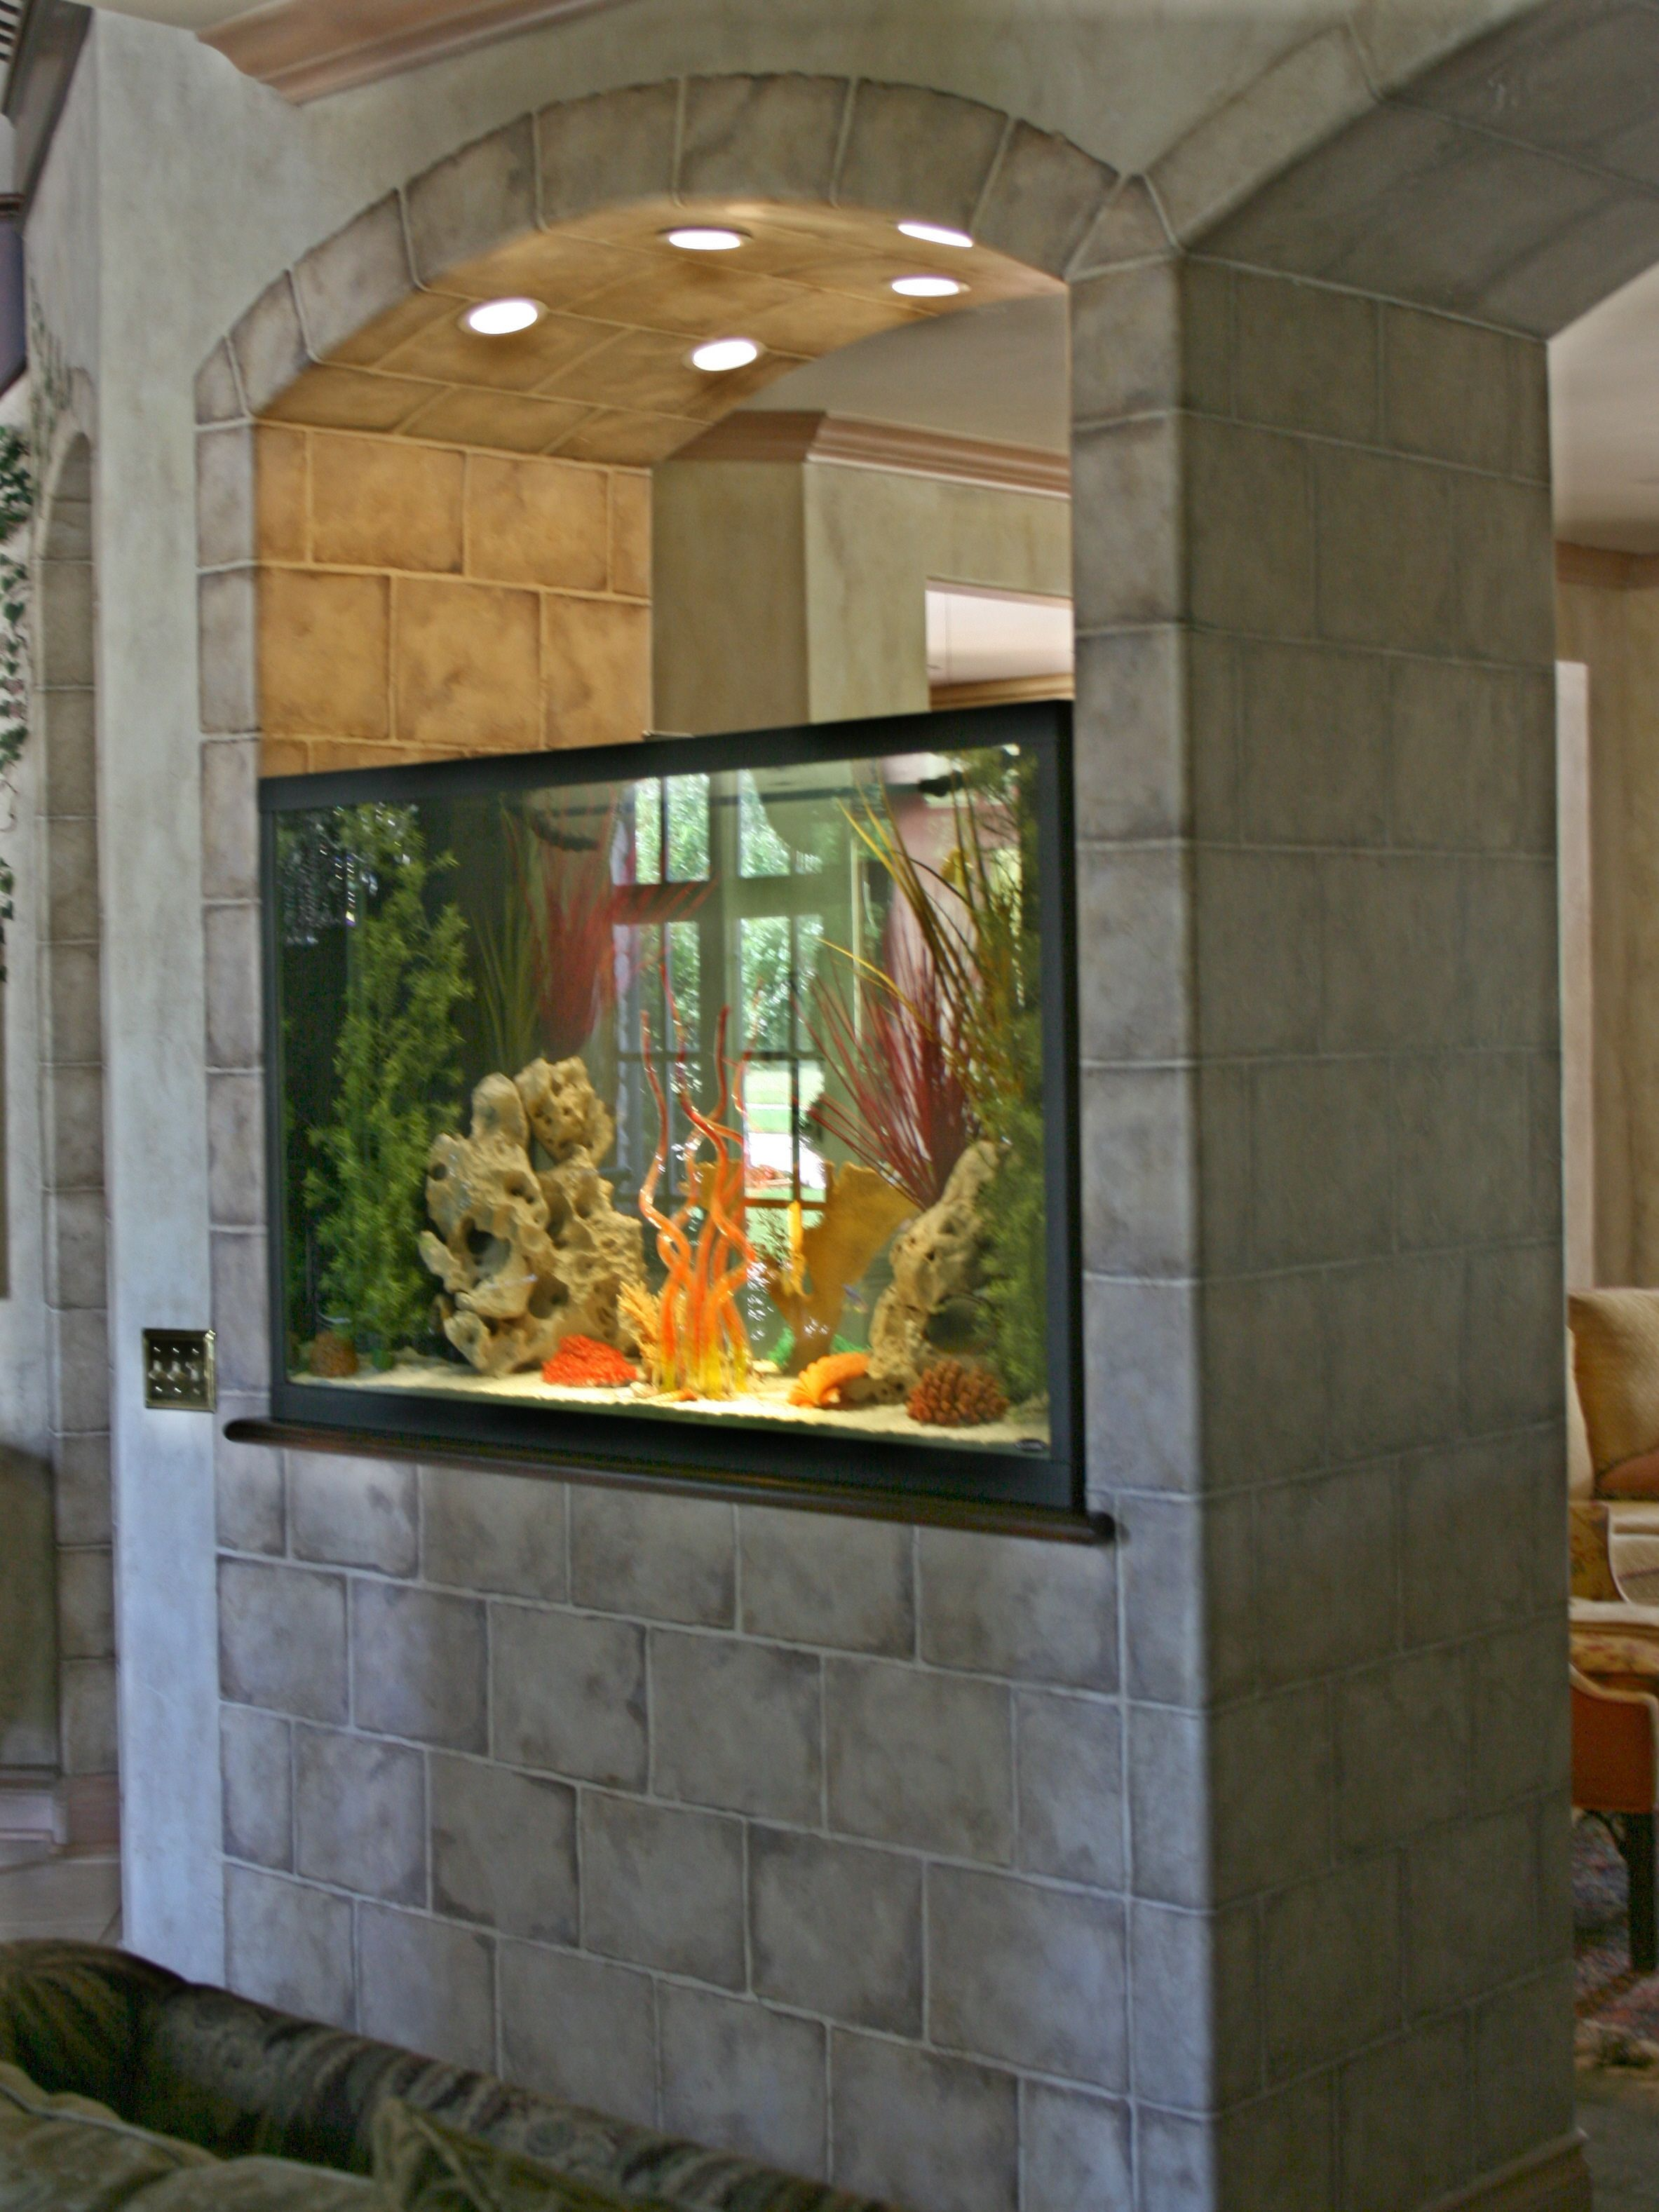 Google Image Result For Http://www.aqualifeaquariumhome